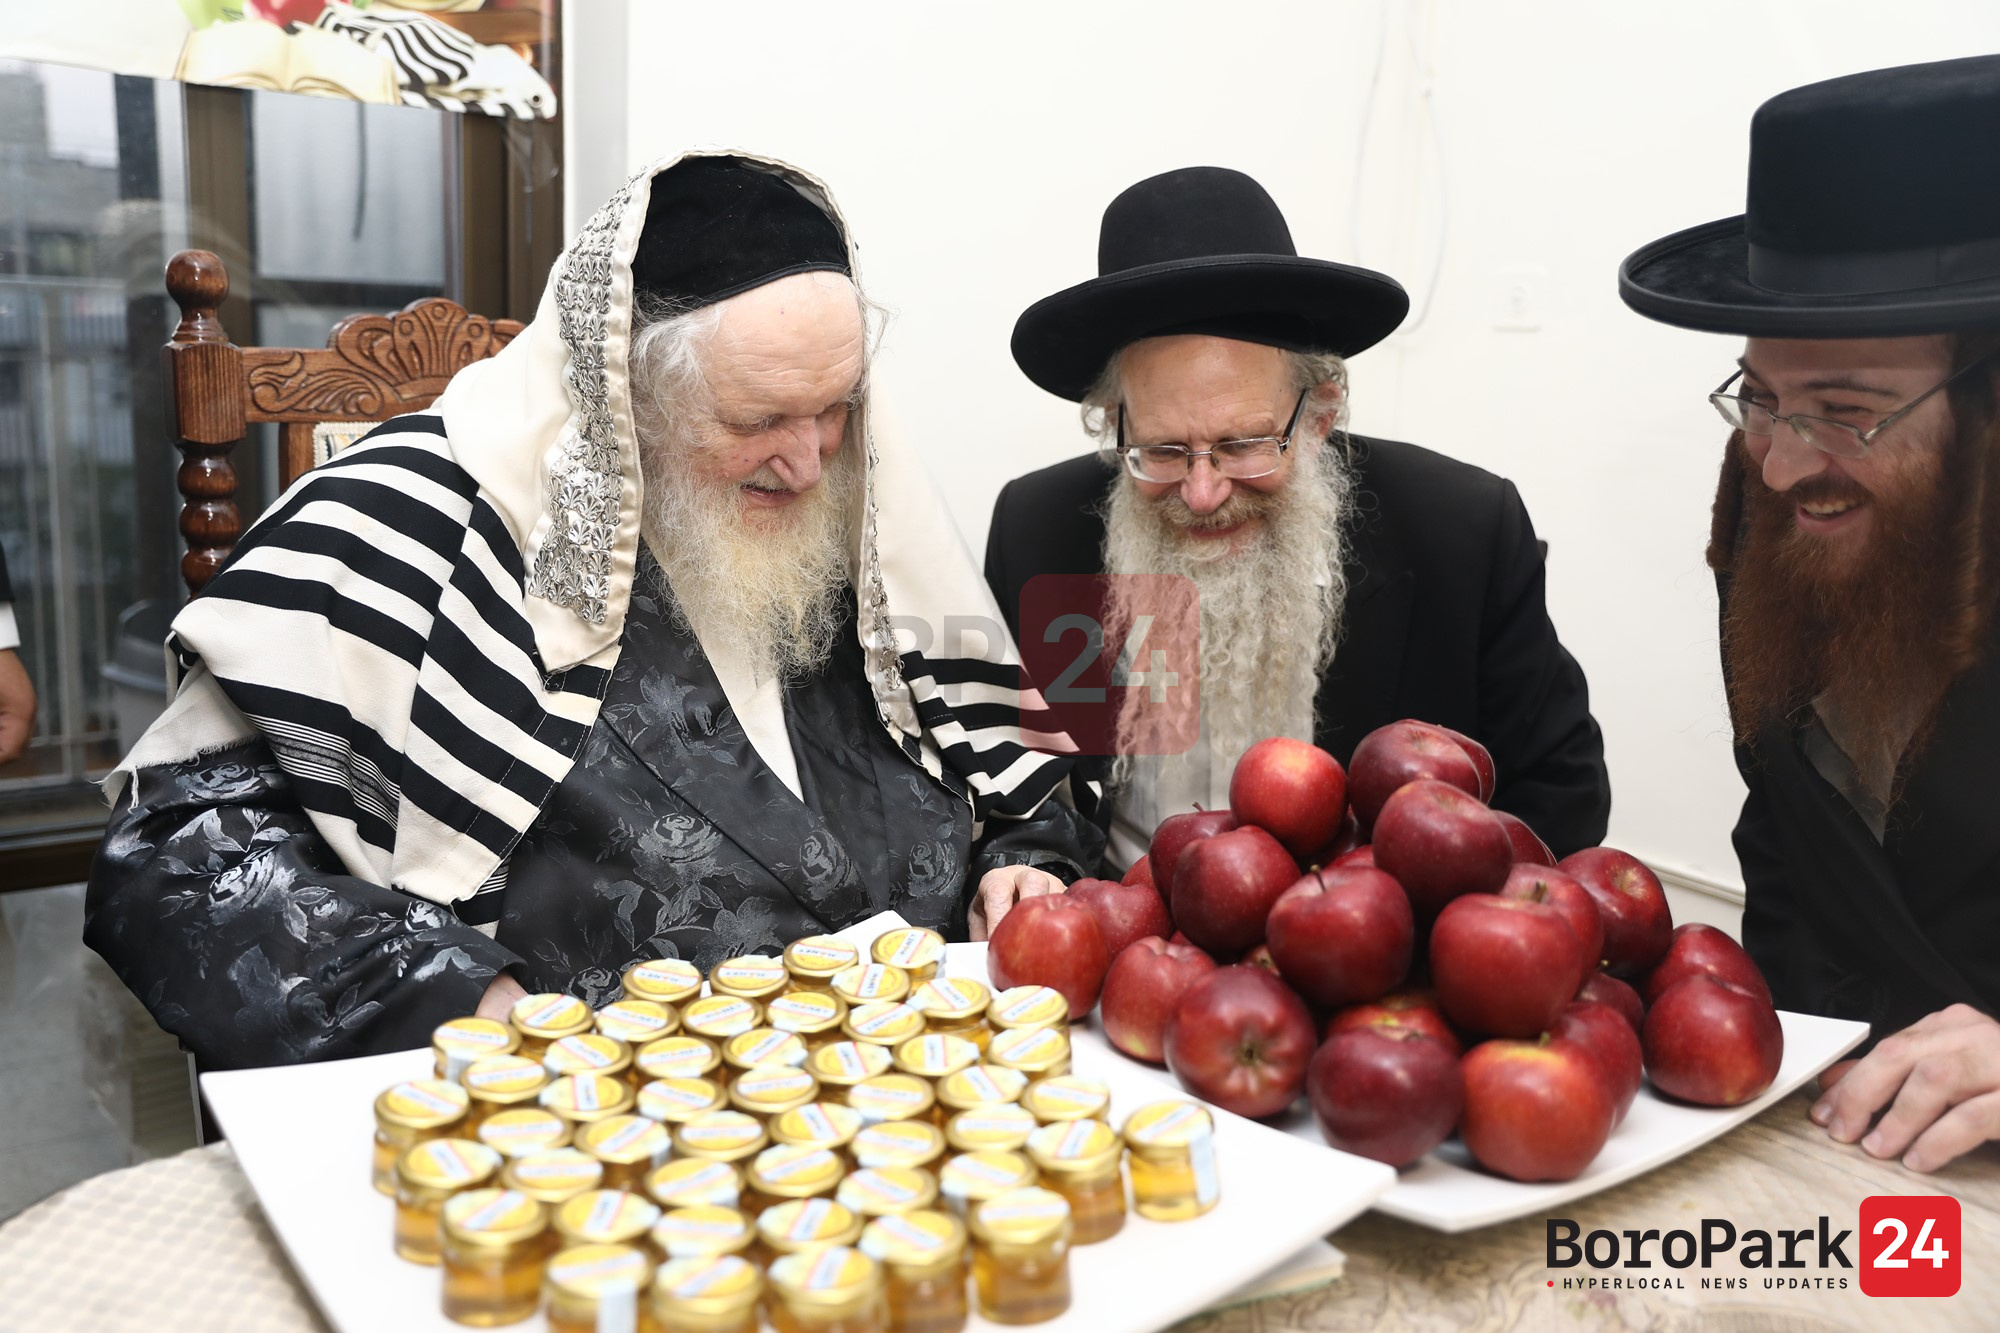 Posek Hador Raved Yerishulayim Benching Honey and Apples for Talmidus of Beis Lepleitas